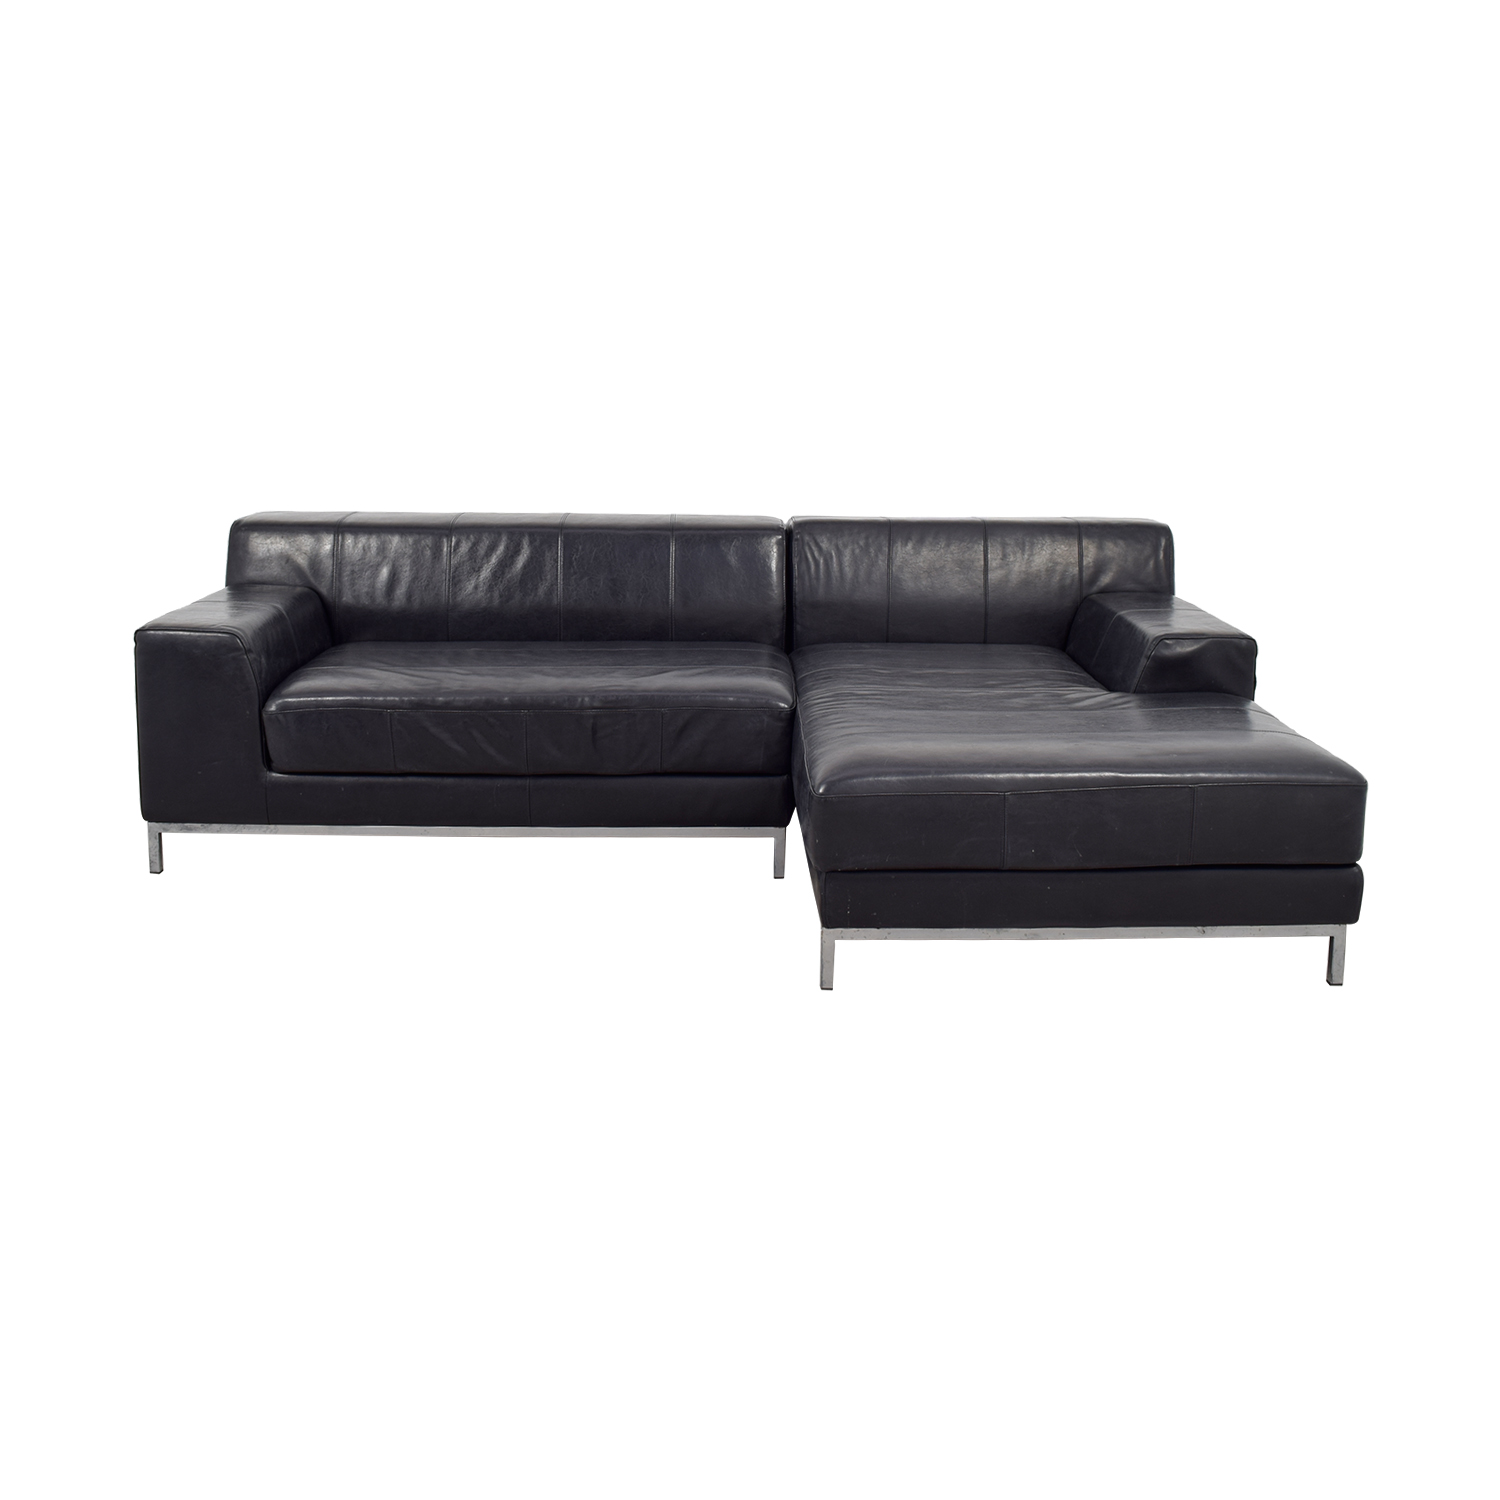 IKEA IKEA Black Chaise Sectional used